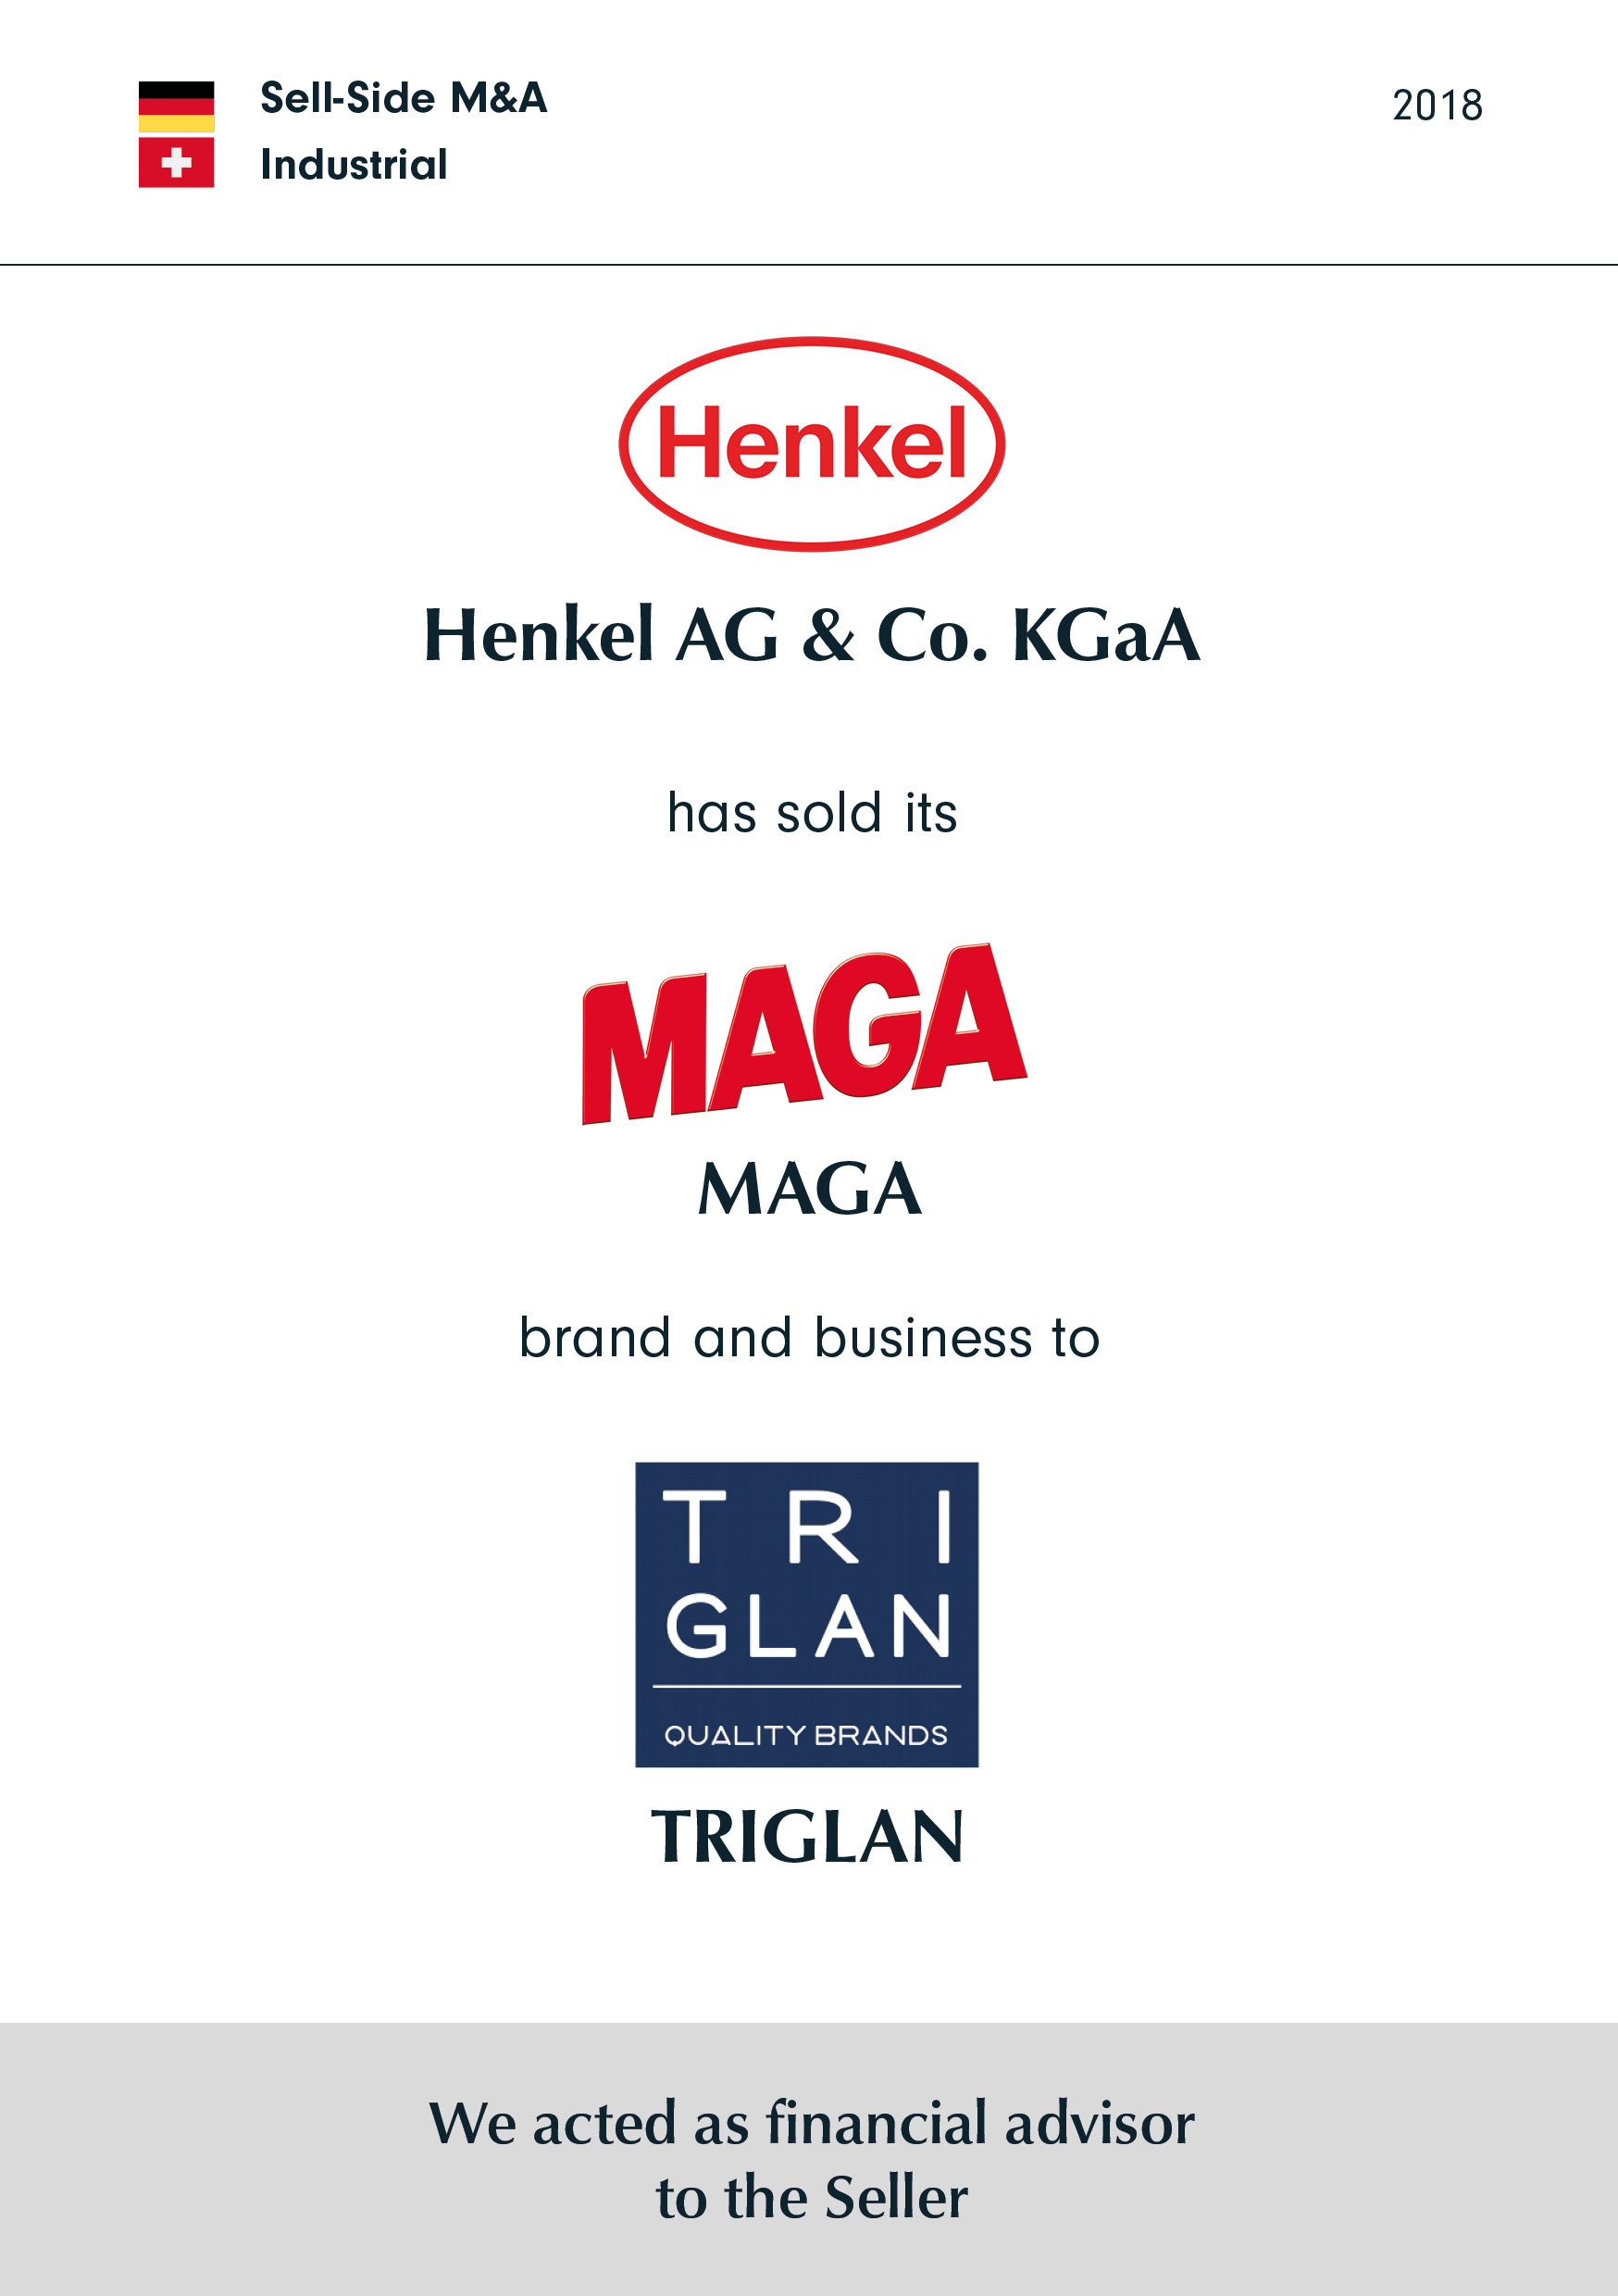 Henkel | has sold its | MAGA | brand and business to | TRIGLAN